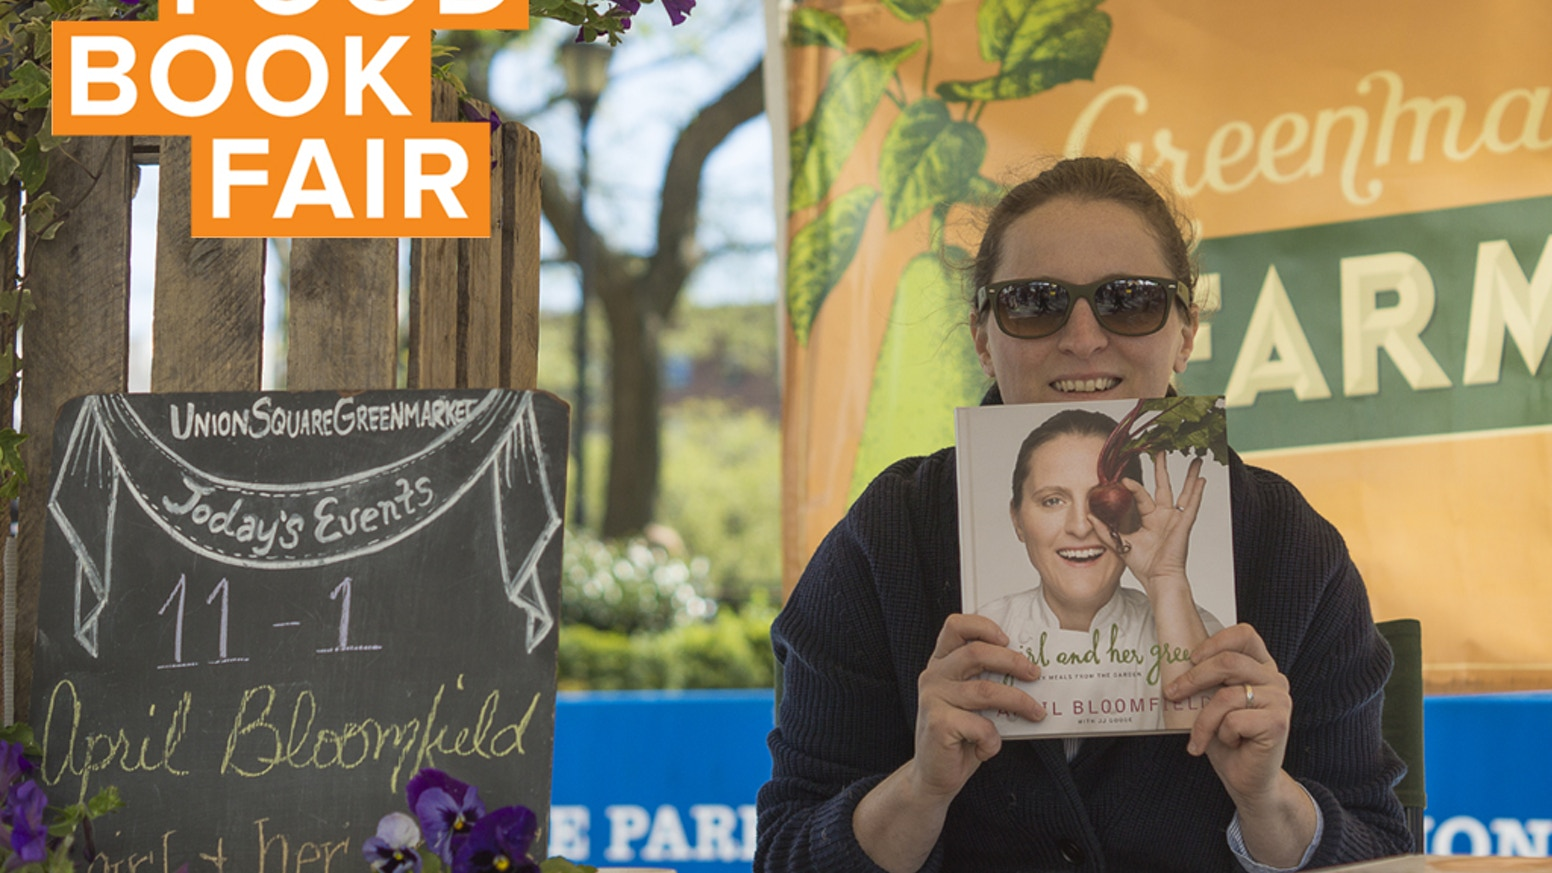 THANK YOU! We did it! We're on the way to writing the next chapter of Food Book Fair, and couldn't have done it without your support.Save the date for May 1st - 2nd at the Wythe Hotel. Visit www.FoodBookFair.com for more info. See you at the fair!